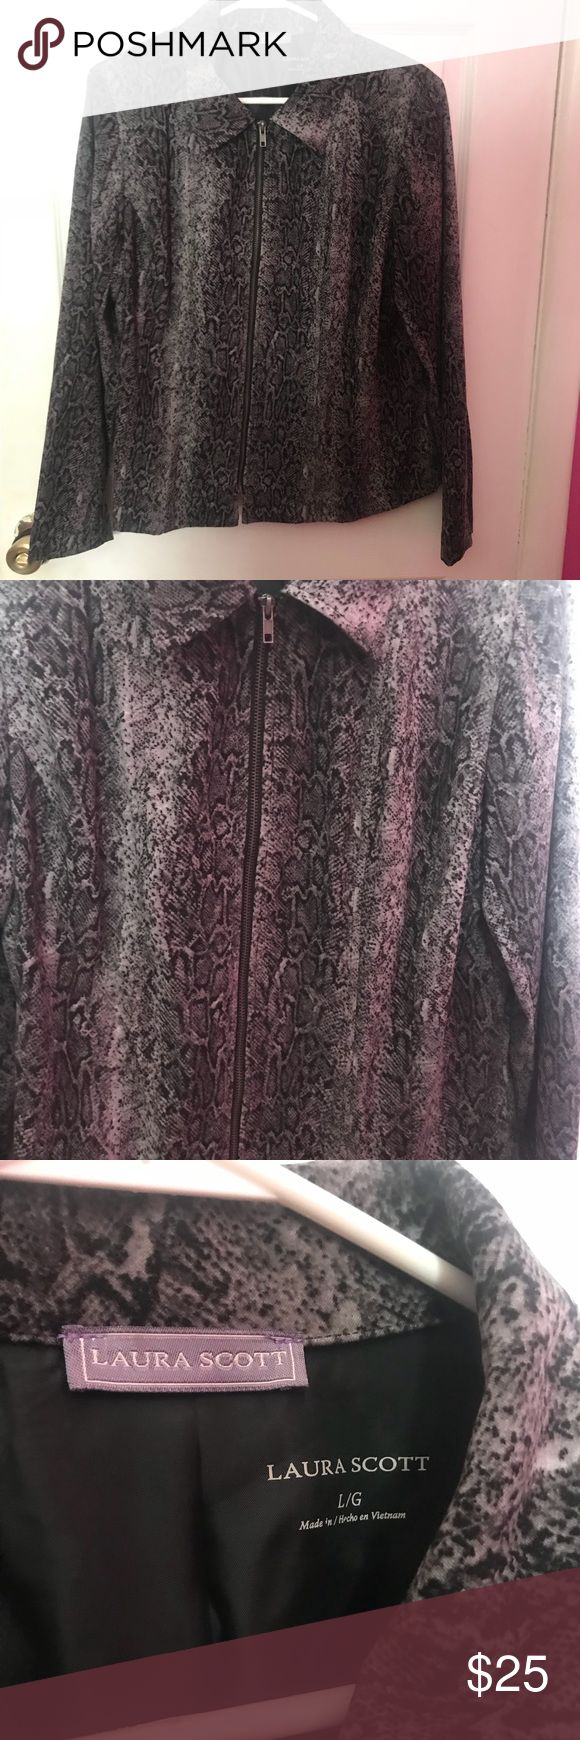 Laura Scott jacket Reptile print! Really nice and in great condition! Laura Scott Jackets & Coats